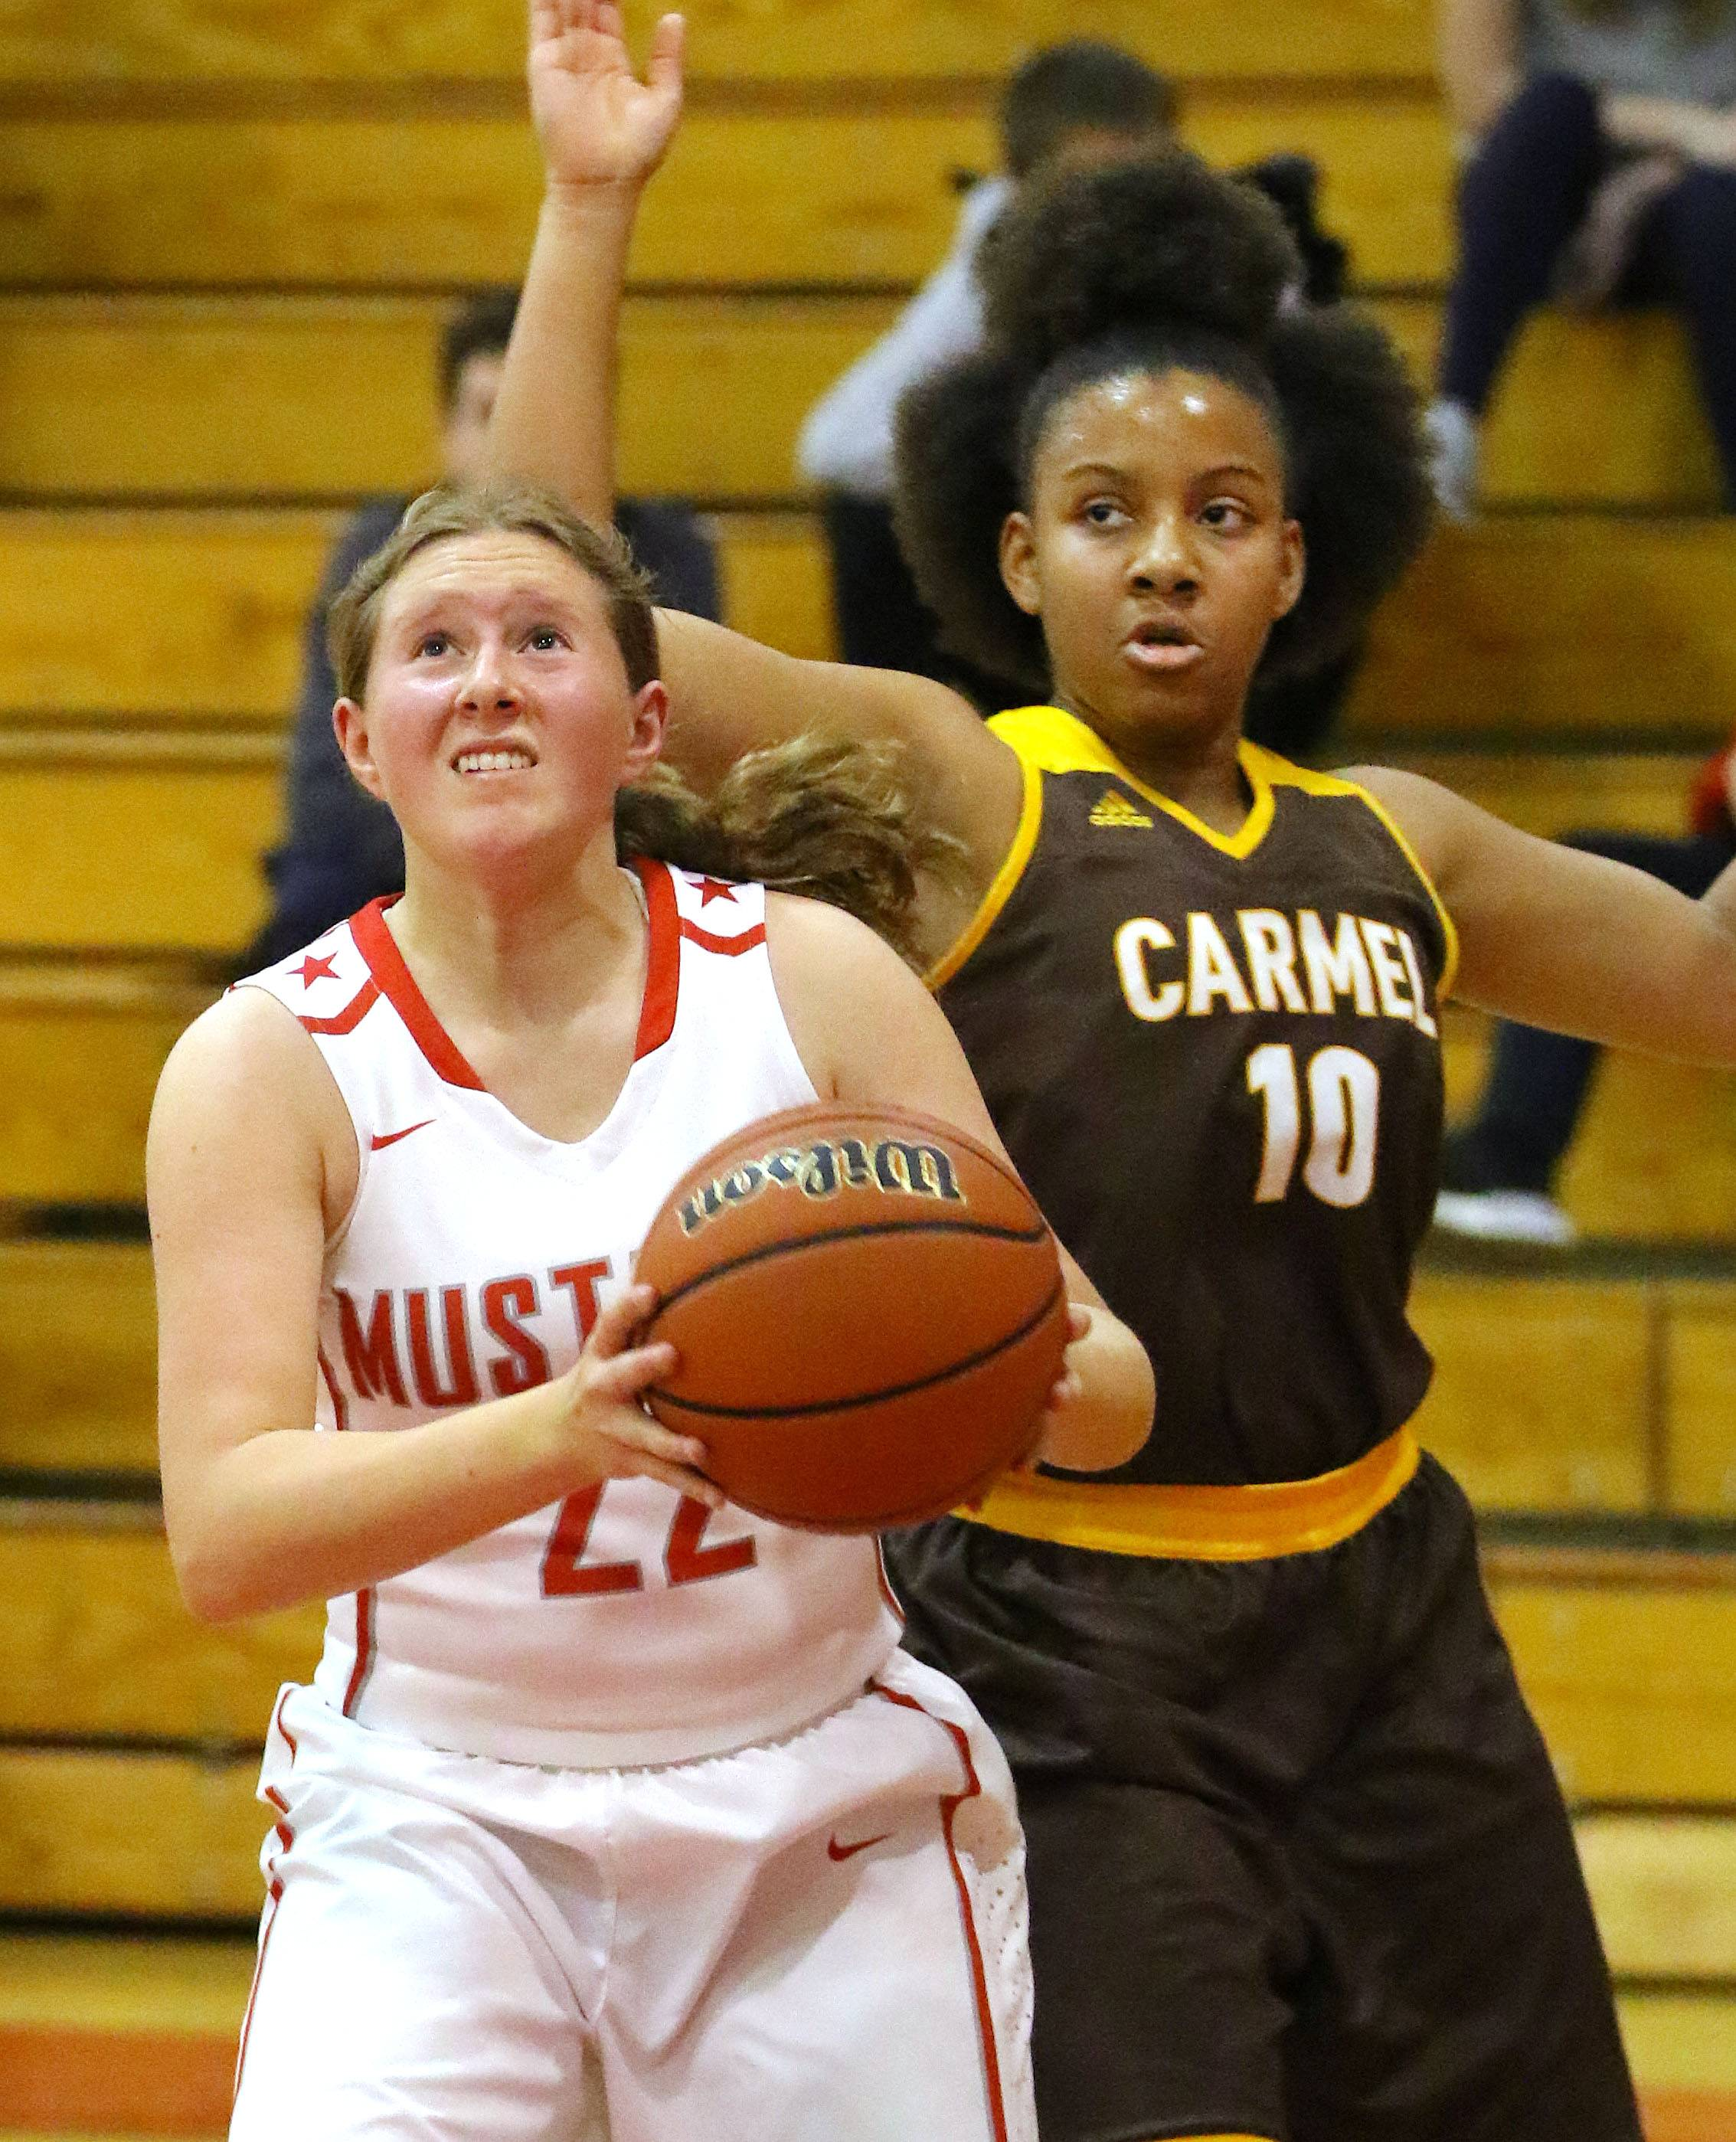 Mundelein's Hannah Buscher, left, drives past Carmel's Shai Horton on Tuesday at Mundelein.